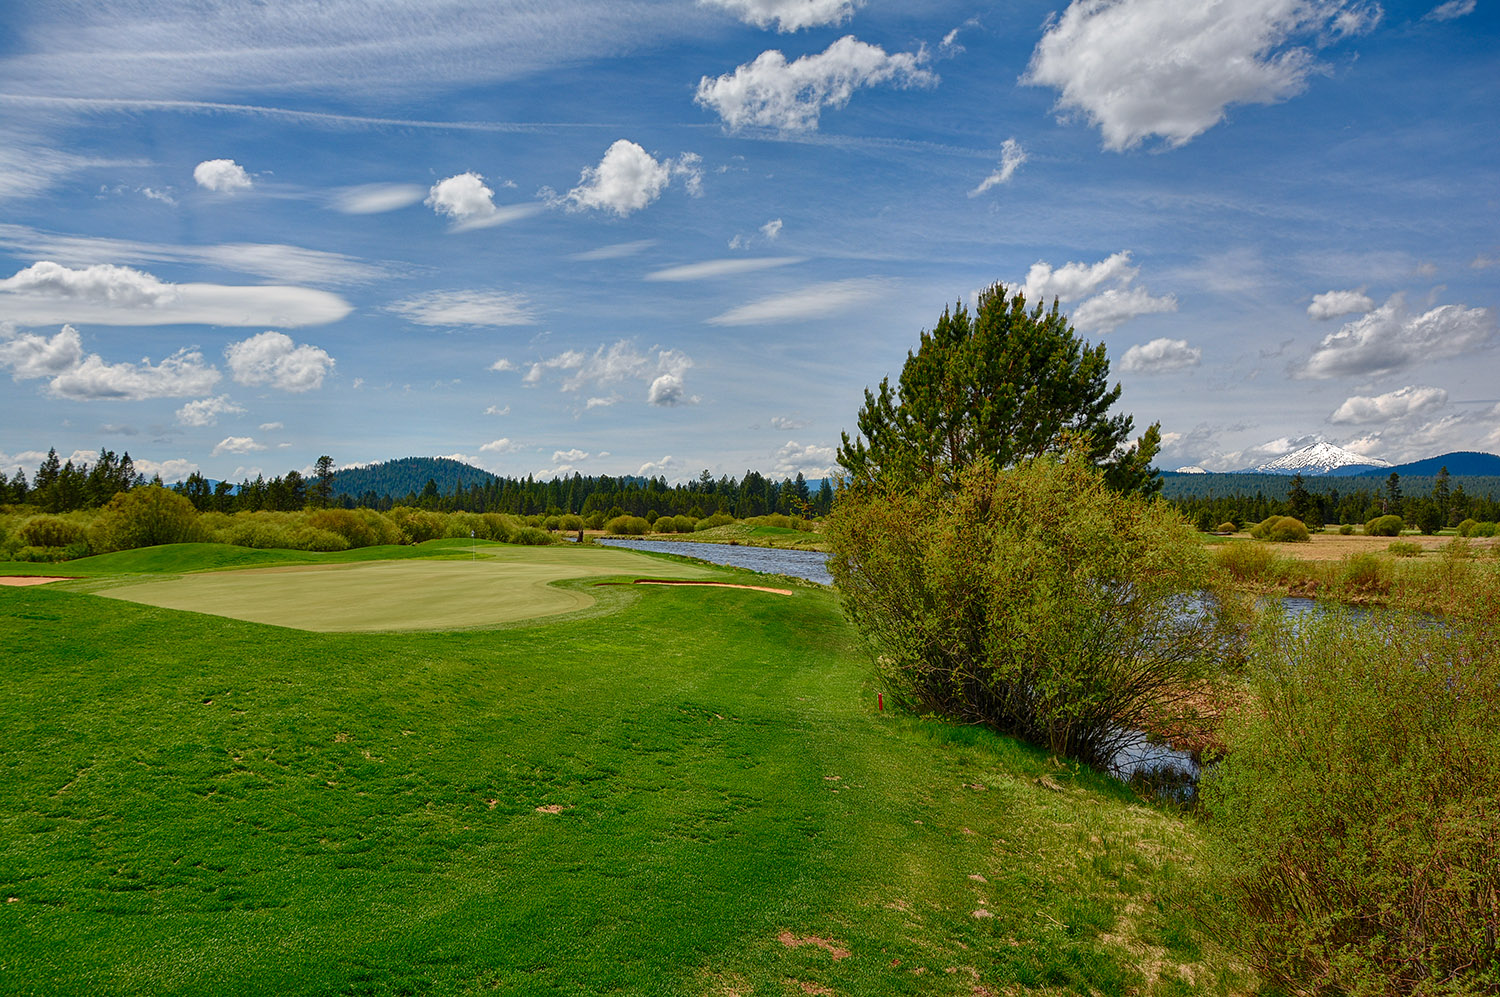 15 Spectacular Golf Course Photos to Help You Forget About the Cold